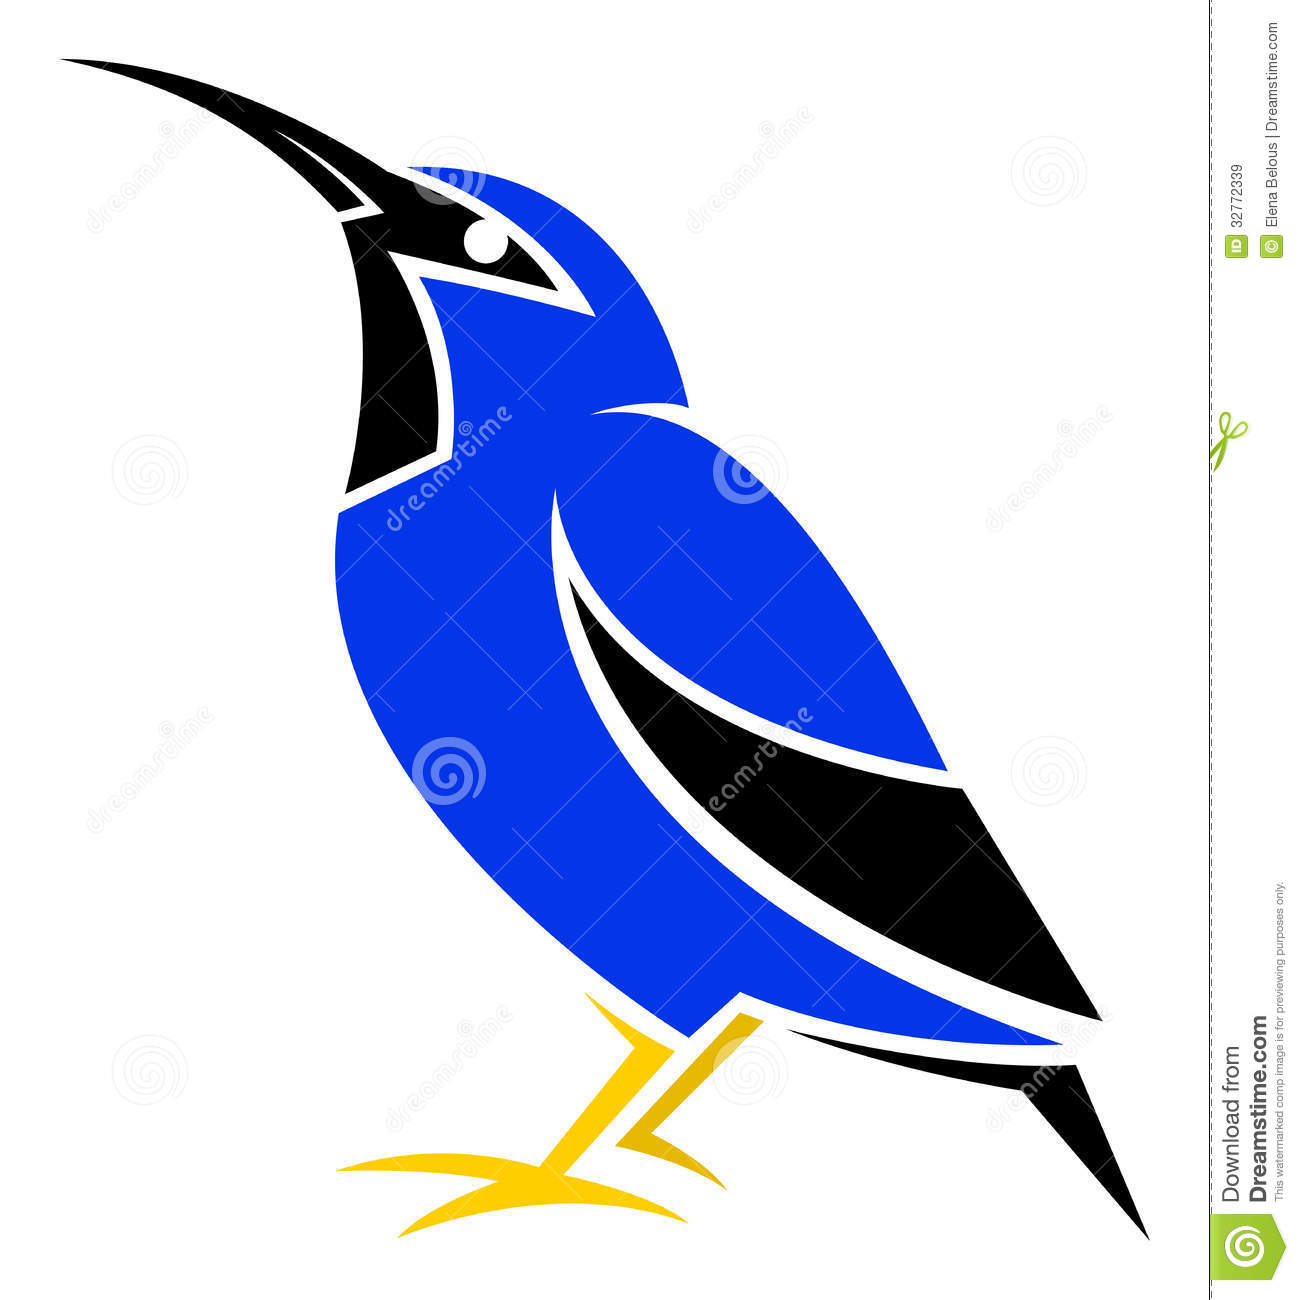 Honeycreeper clipart #5, Download drawings